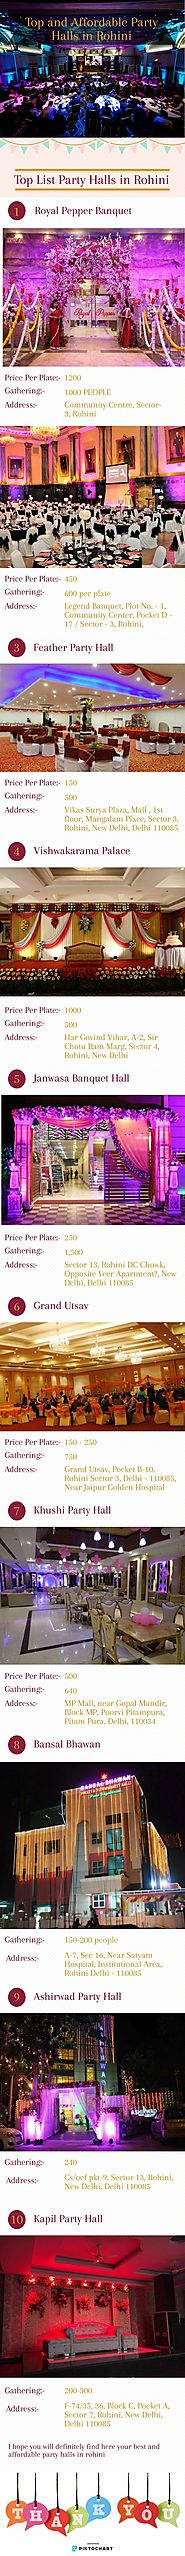 Party halls in rohini delhi | Piktochart Visual Editor